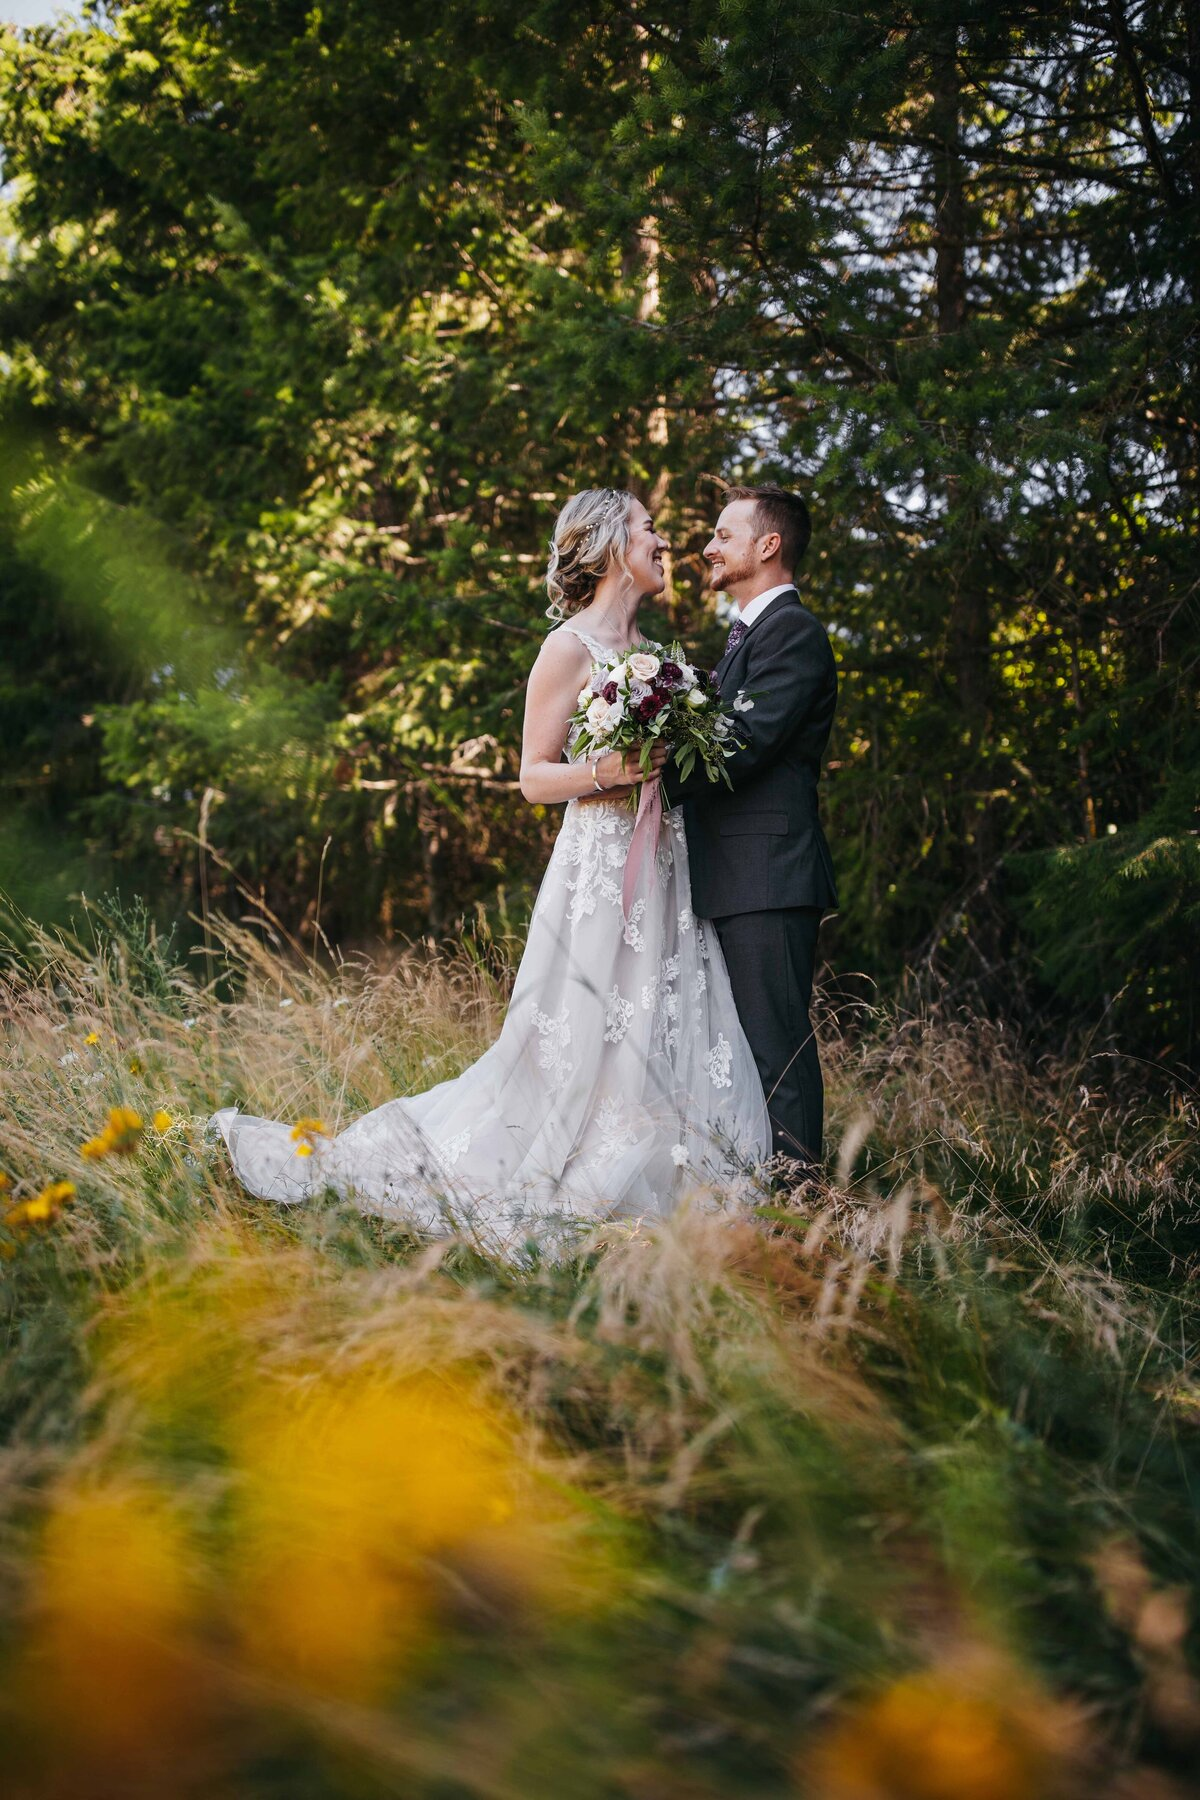 Outdoor Wedding Photographer in Mt Rainier National Park, Montana - Clara Jay Photo